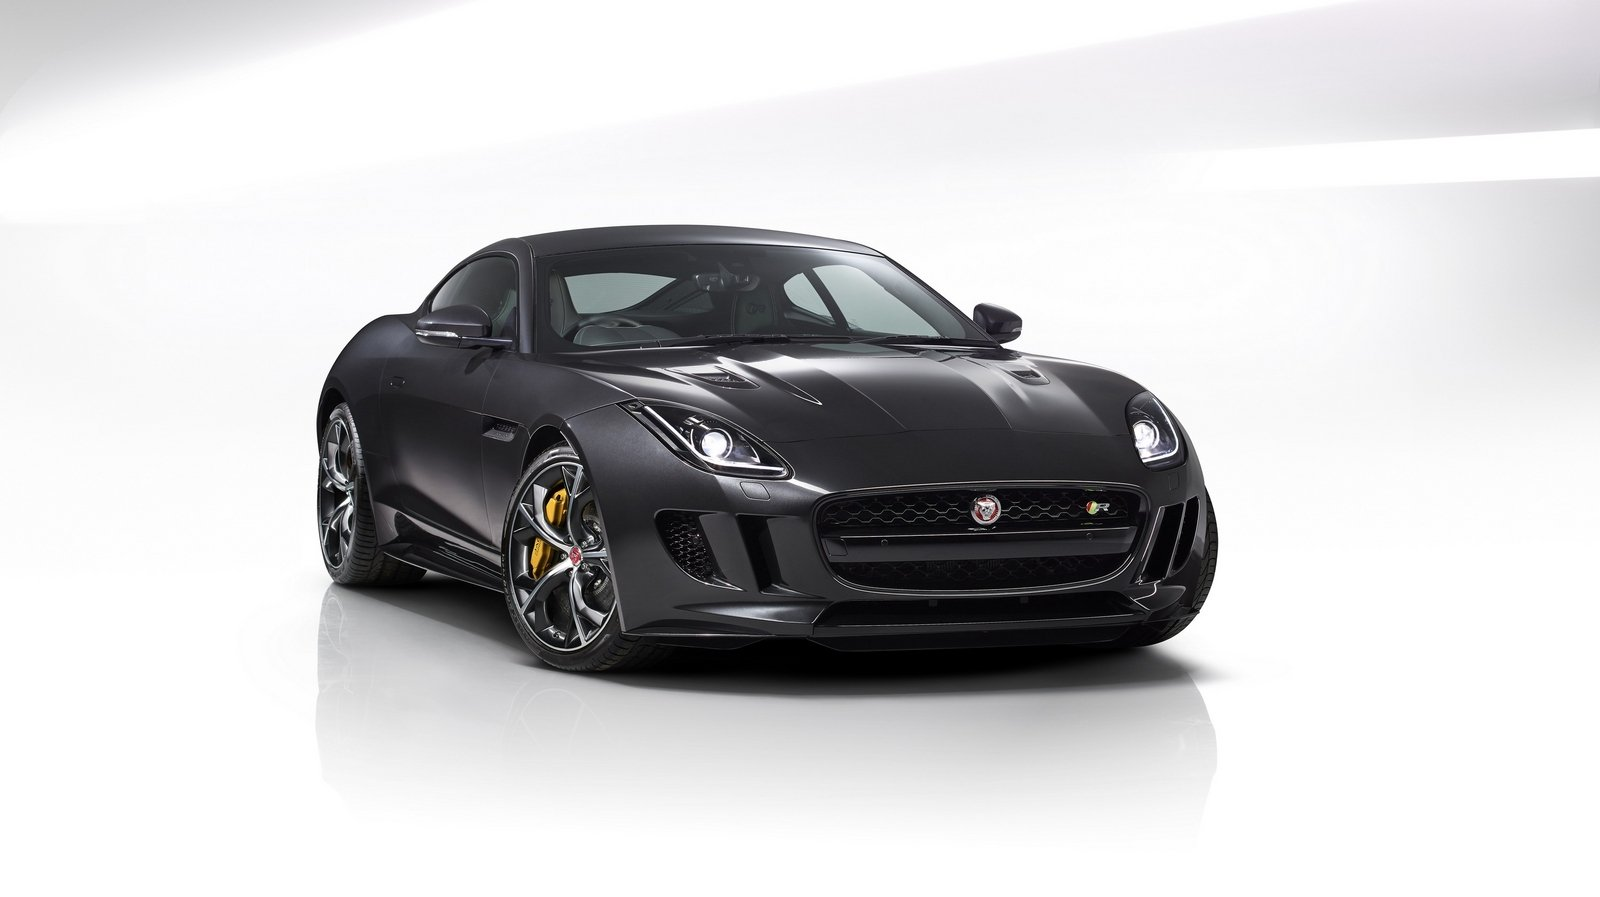 2016 jaguar f type awd coupe review top speed. Black Bedroom Furniture Sets. Home Design Ideas